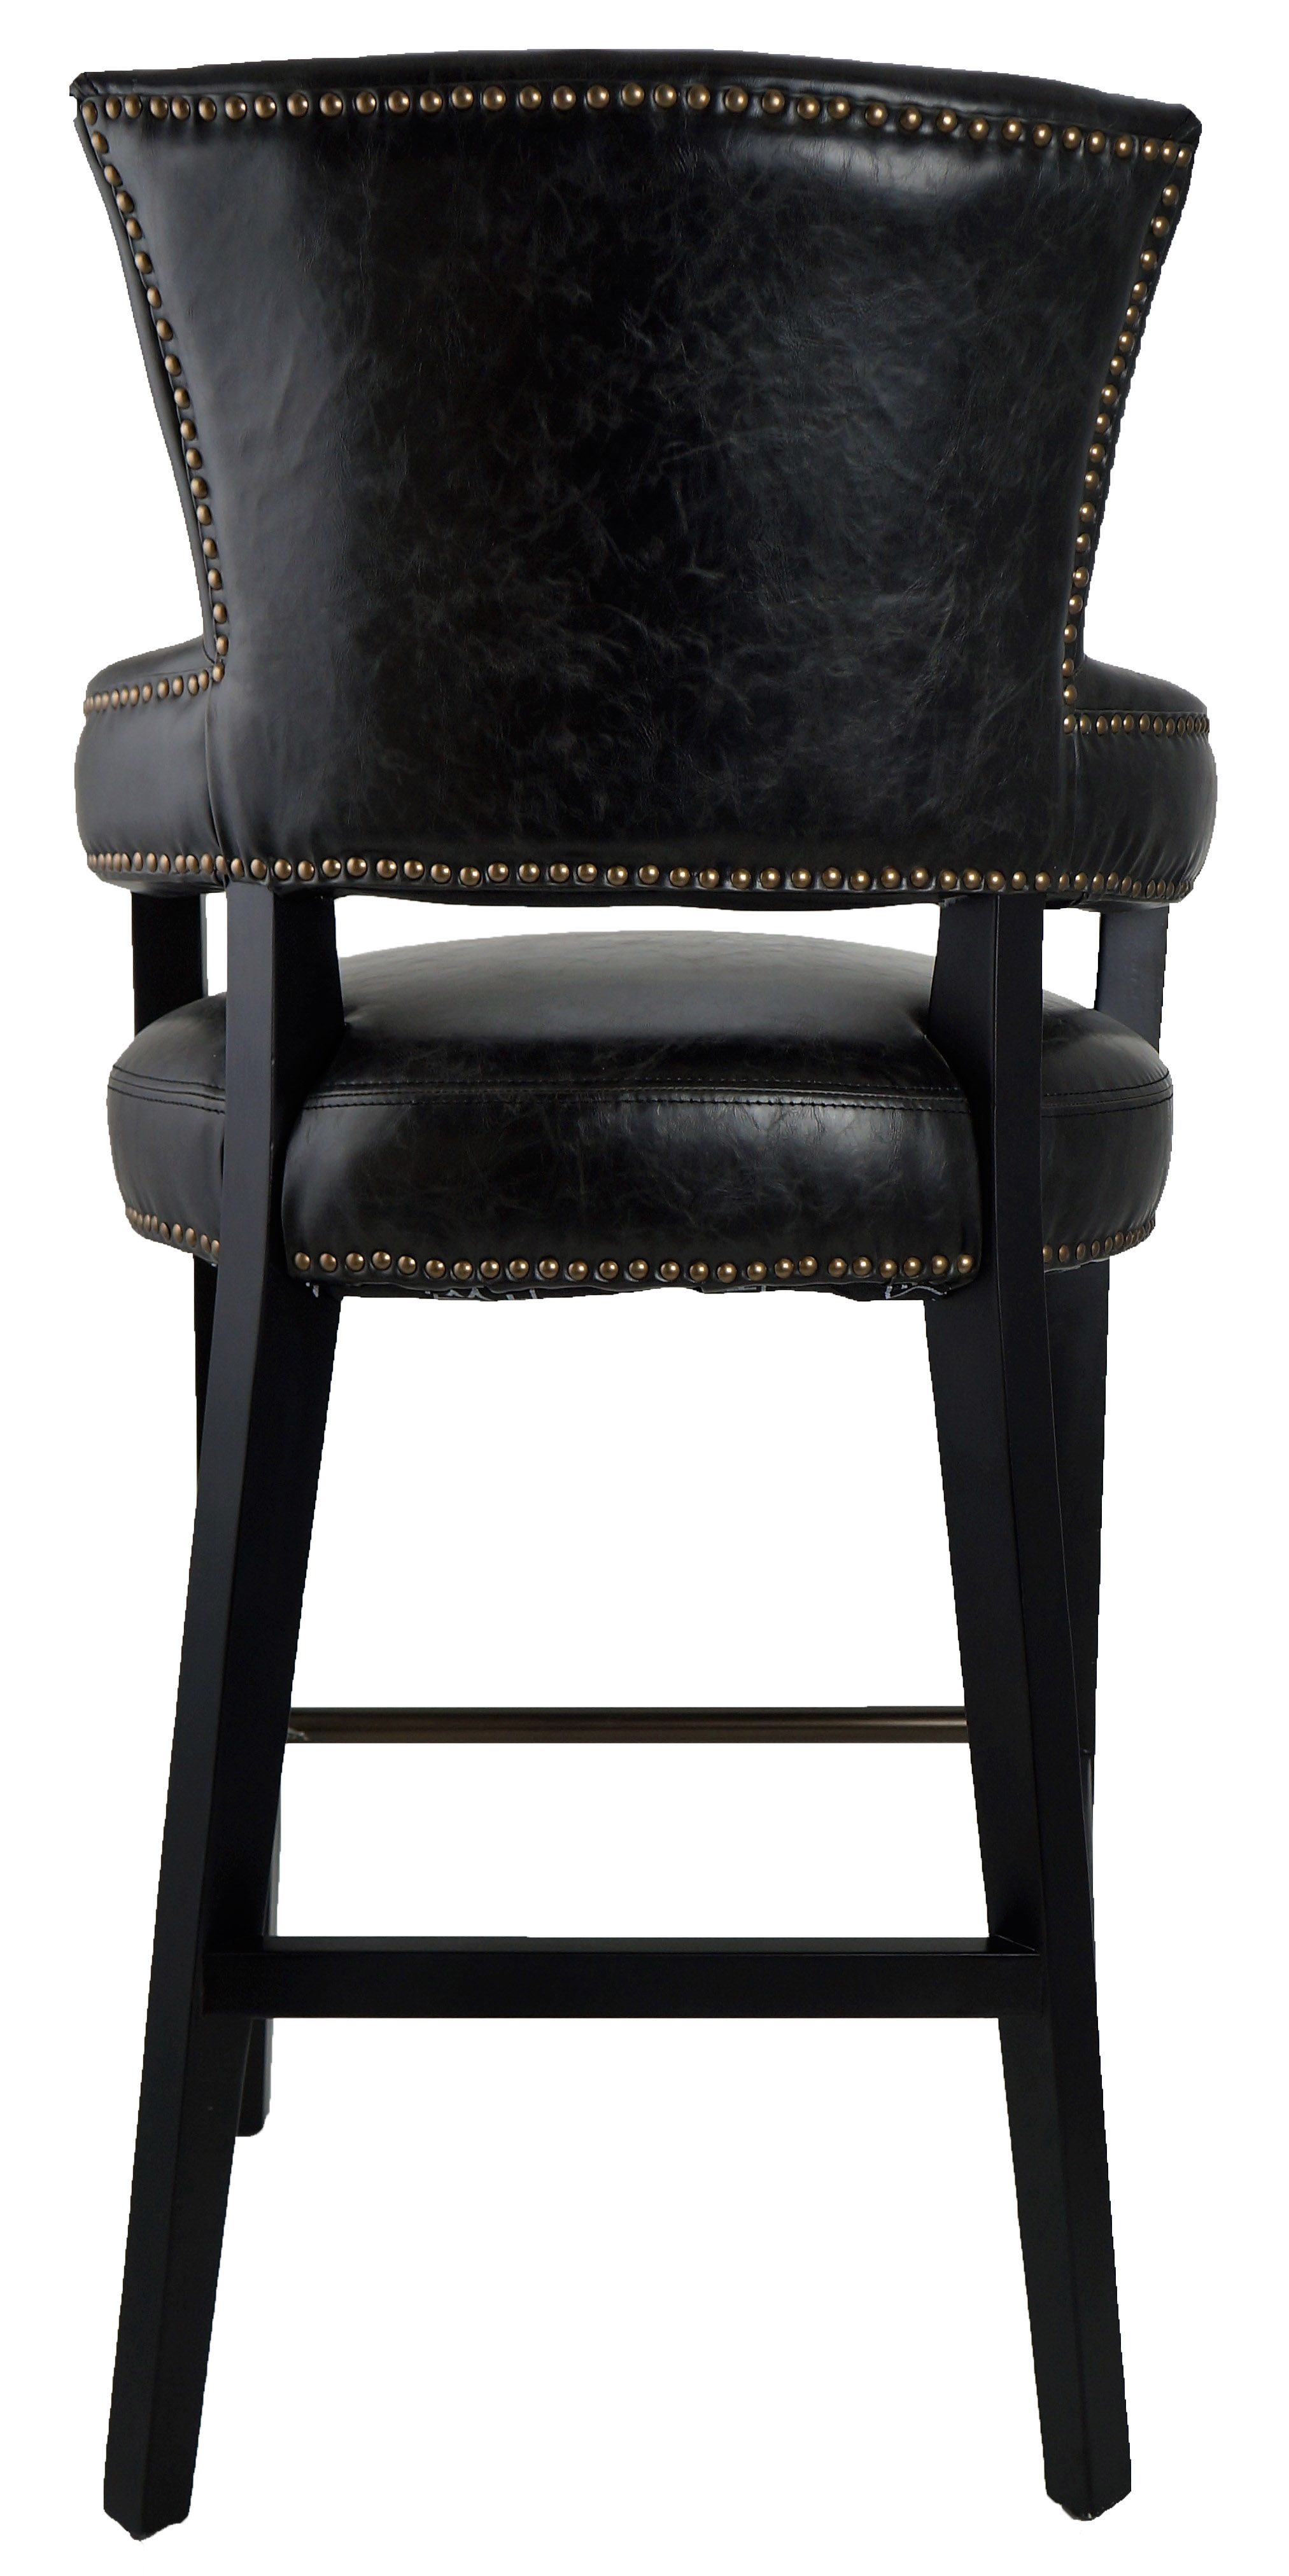 1360c541727 Bar Stools   Kitchen Counter Stools    Majestic Looking Bar n Counter Stool  with Arms in Black RV-4334 - ARTeFAC USA